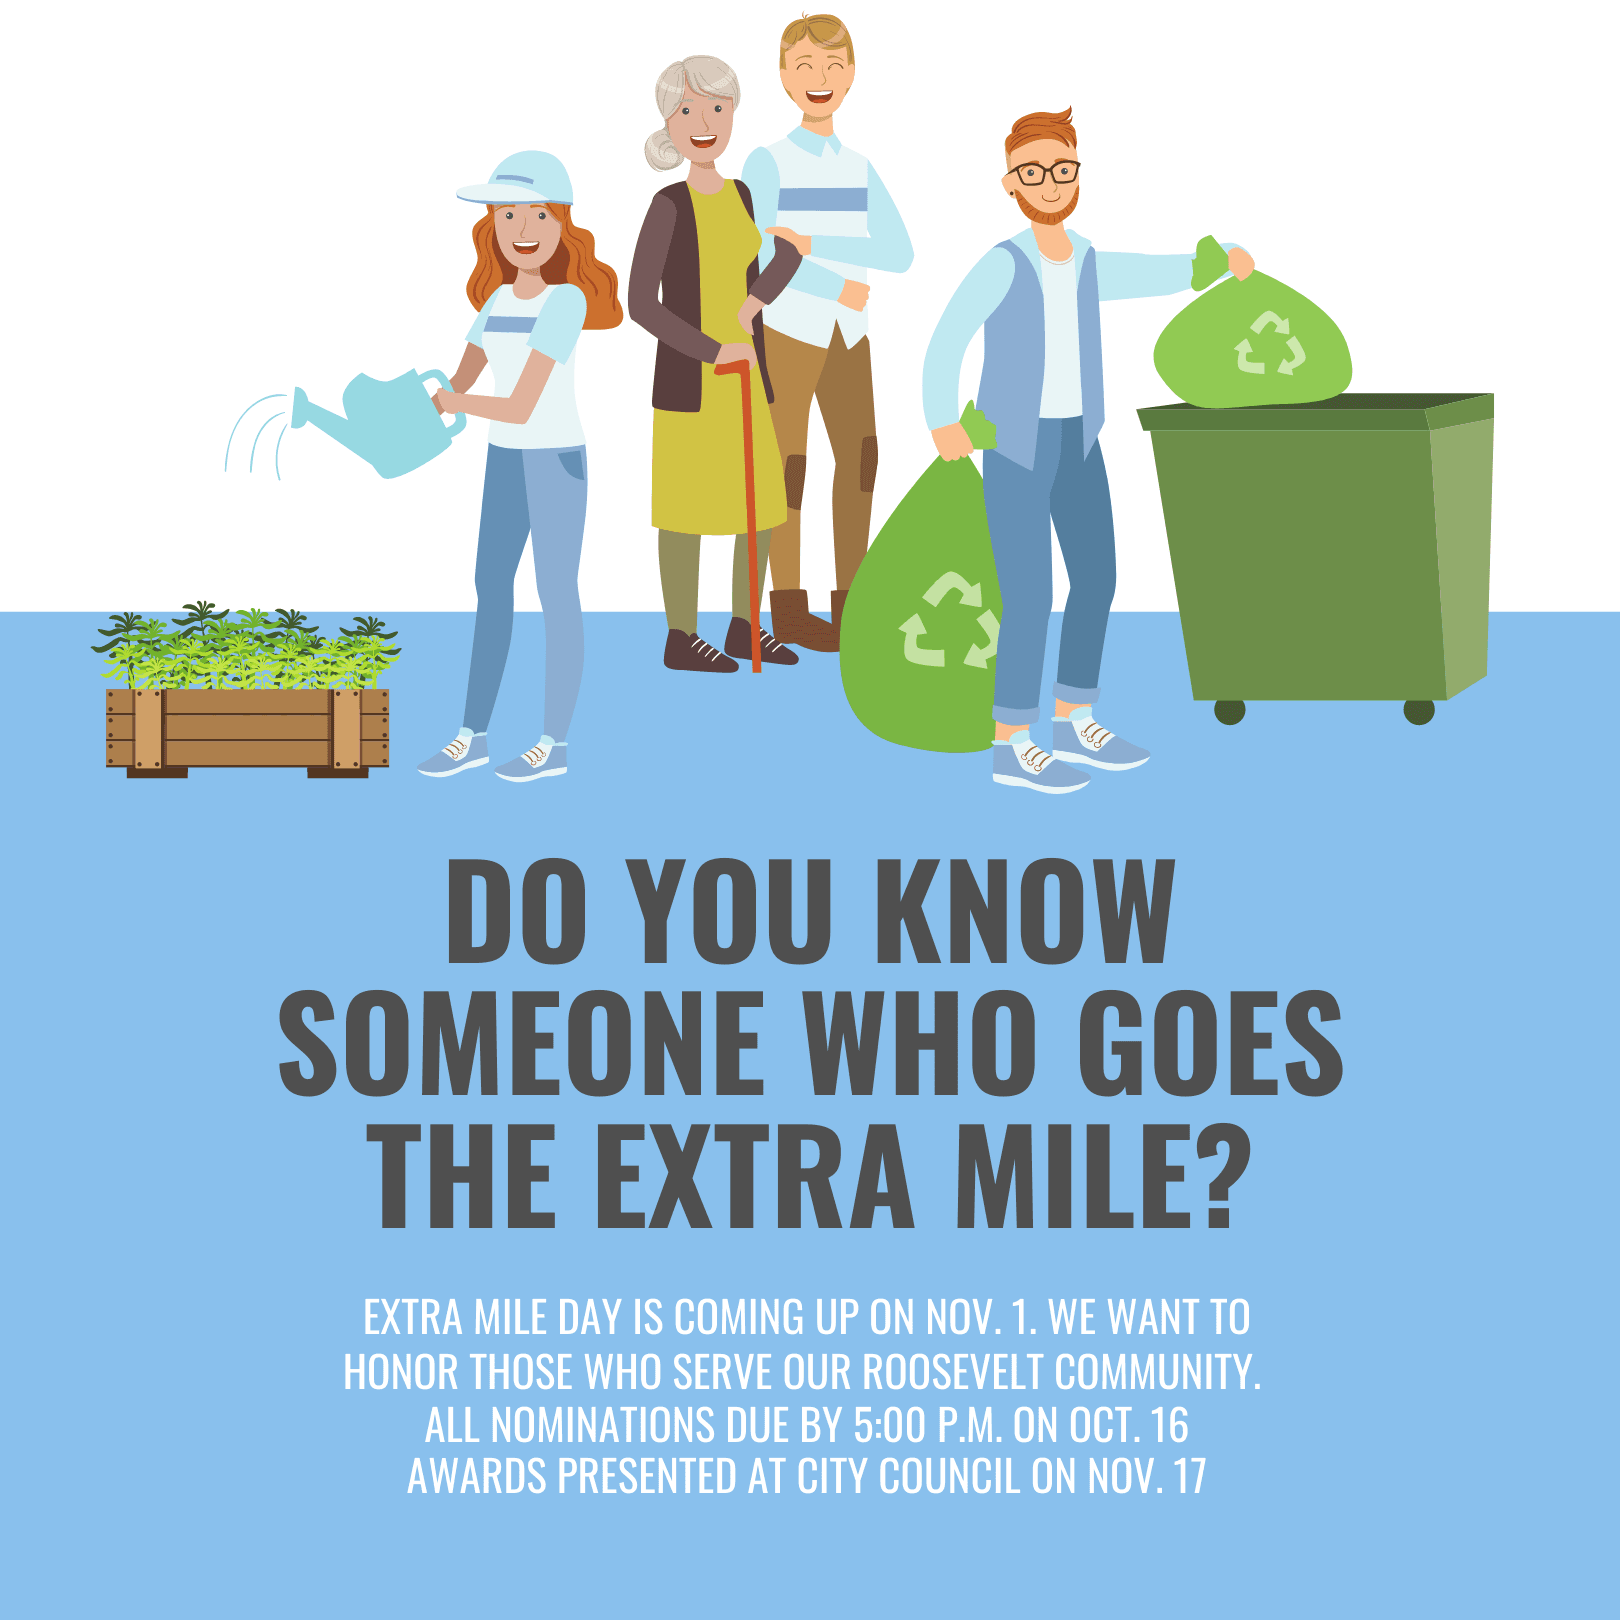 Do you know someone who goes the extra mile? Extra Mile Day is coming up Nov. 1.